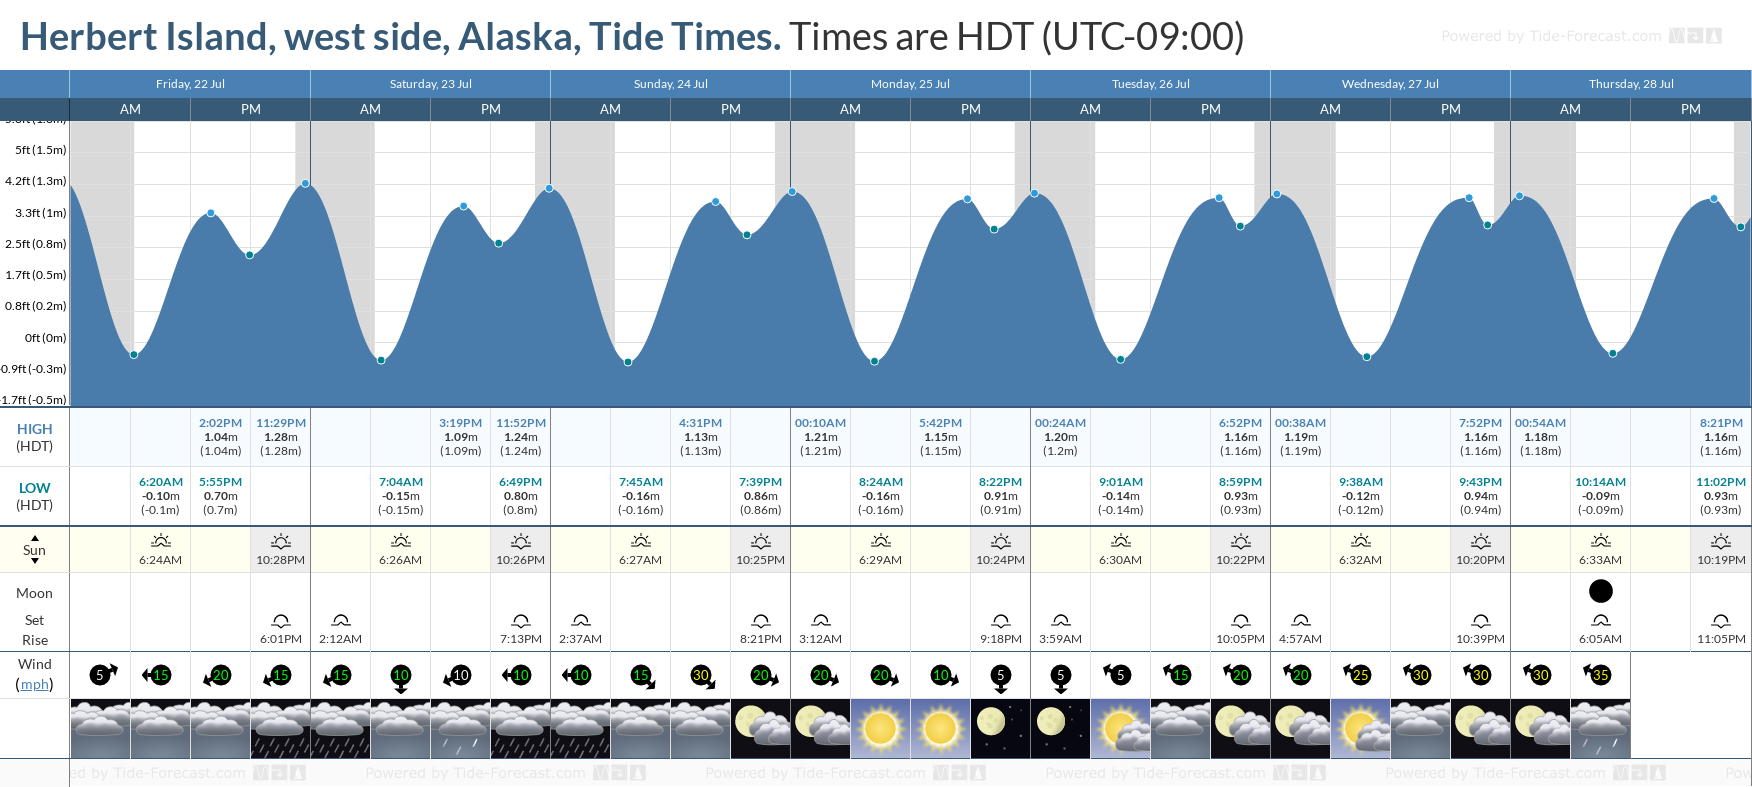 Herbert Island, west side, Alaska Tide Chart including high and low tide tide times for the next 7 days